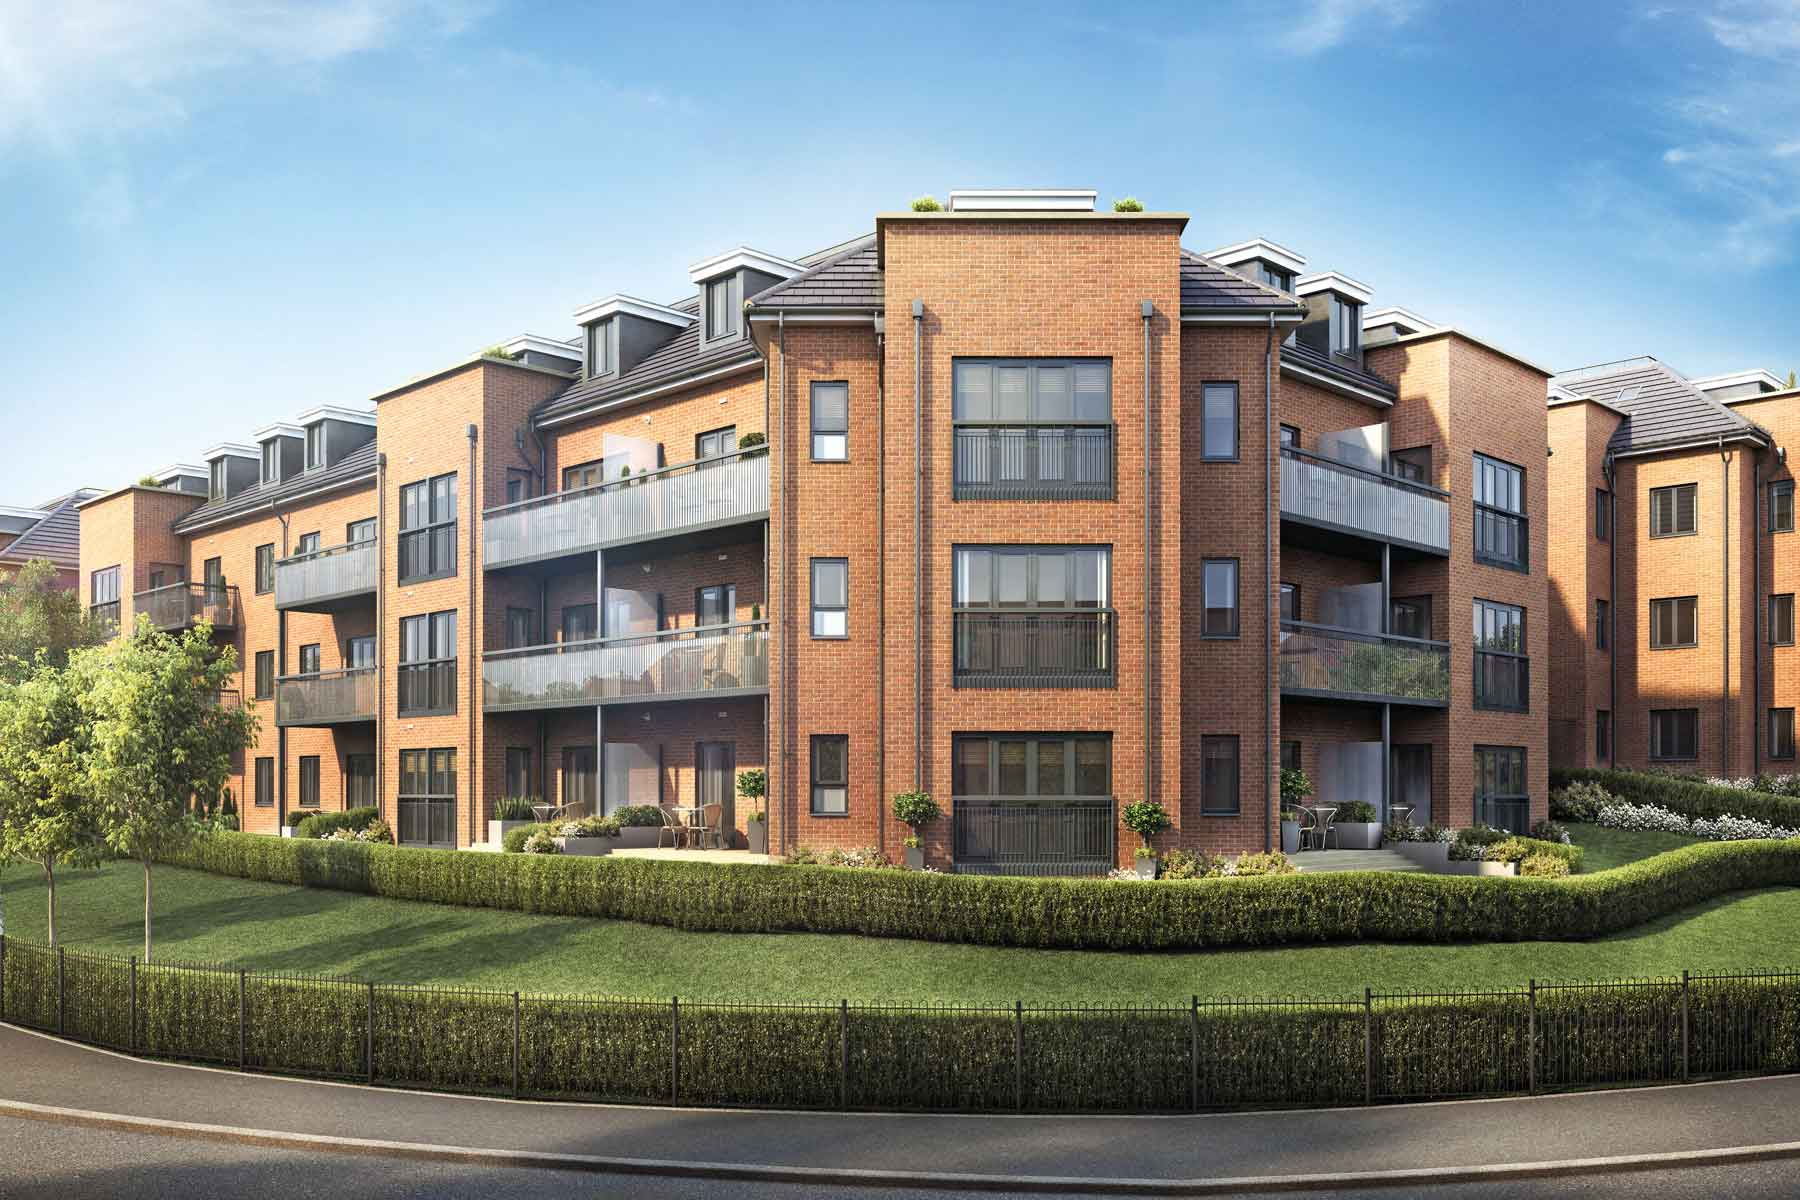 New-Block2-Plots-14-45_Maven_Court_1800x1200_WEB